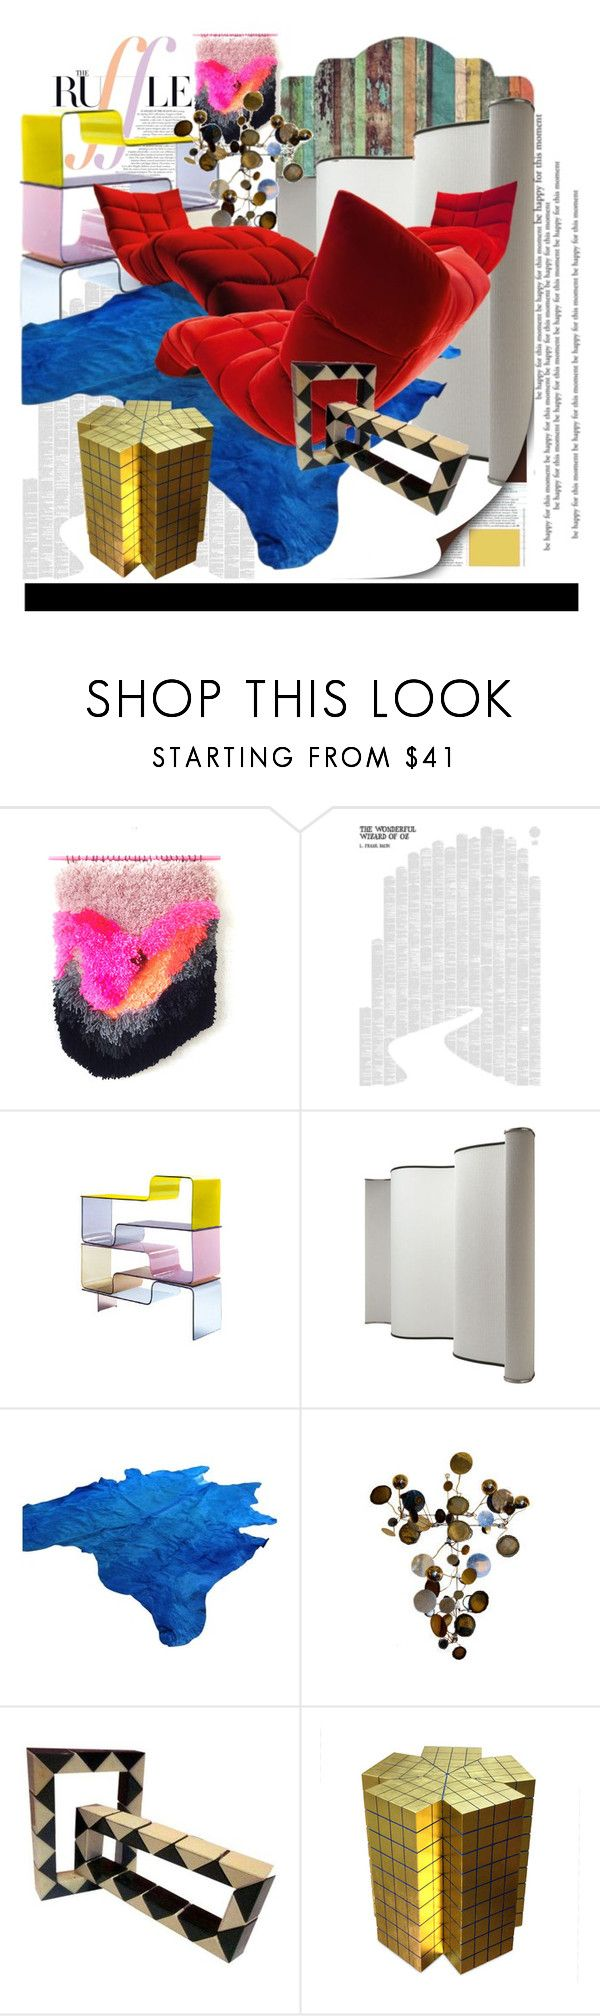 """""""Abstract Art out of Furniture"""" by synkopika ❤ liked on Polyvore featuring interior, interiors, interior design, home, home decor, interior decorating, WALL, Spineless Classics, Zeritalia and Baleri Italia"""